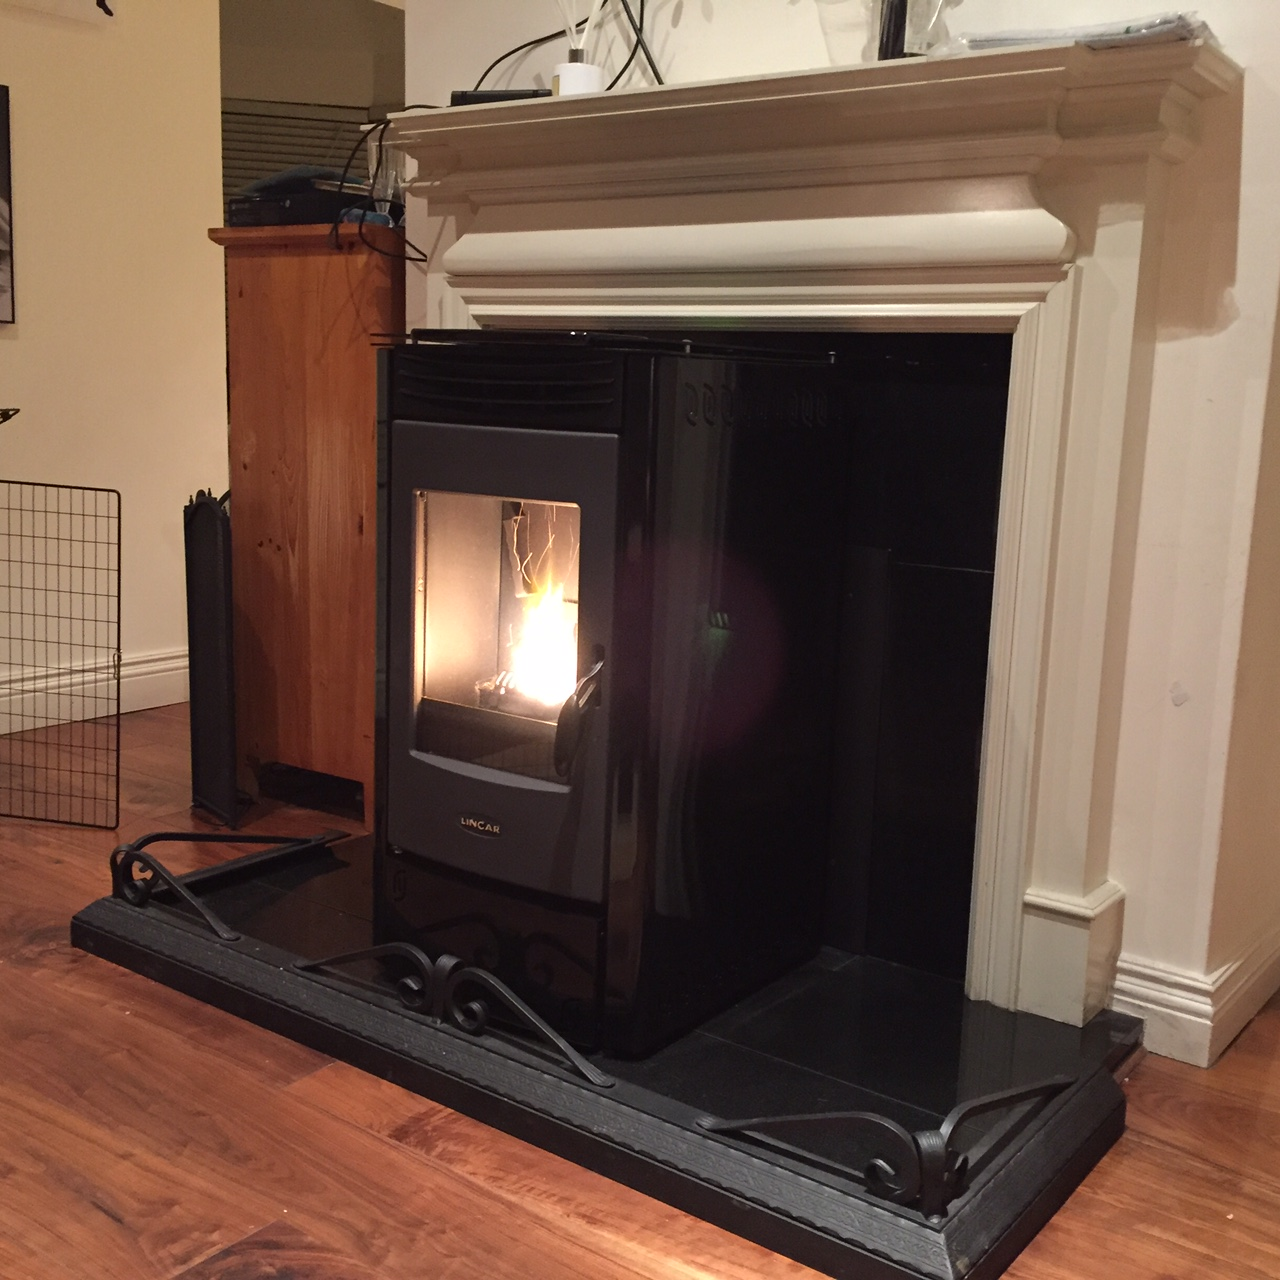 Lincar Perla pellet stove. Fitted in front of original marble fireplace with hearth extension to the back of the stove.